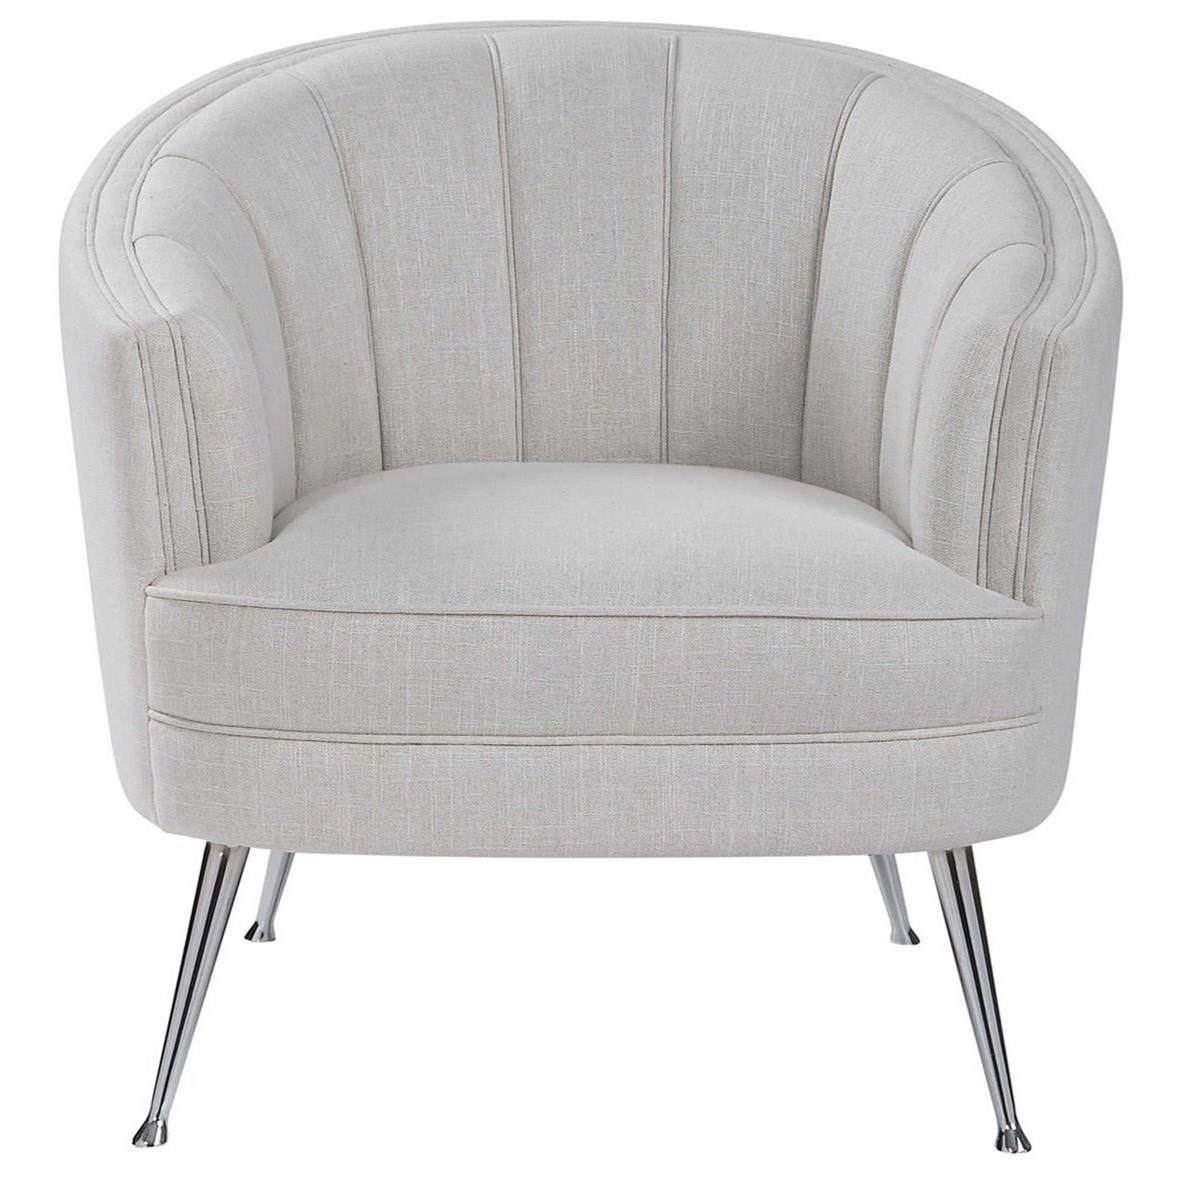 Accent Furniture - Accent Chairs Janie Mid-Century Accent Chair by Uttermost at Factory Direct Furniture